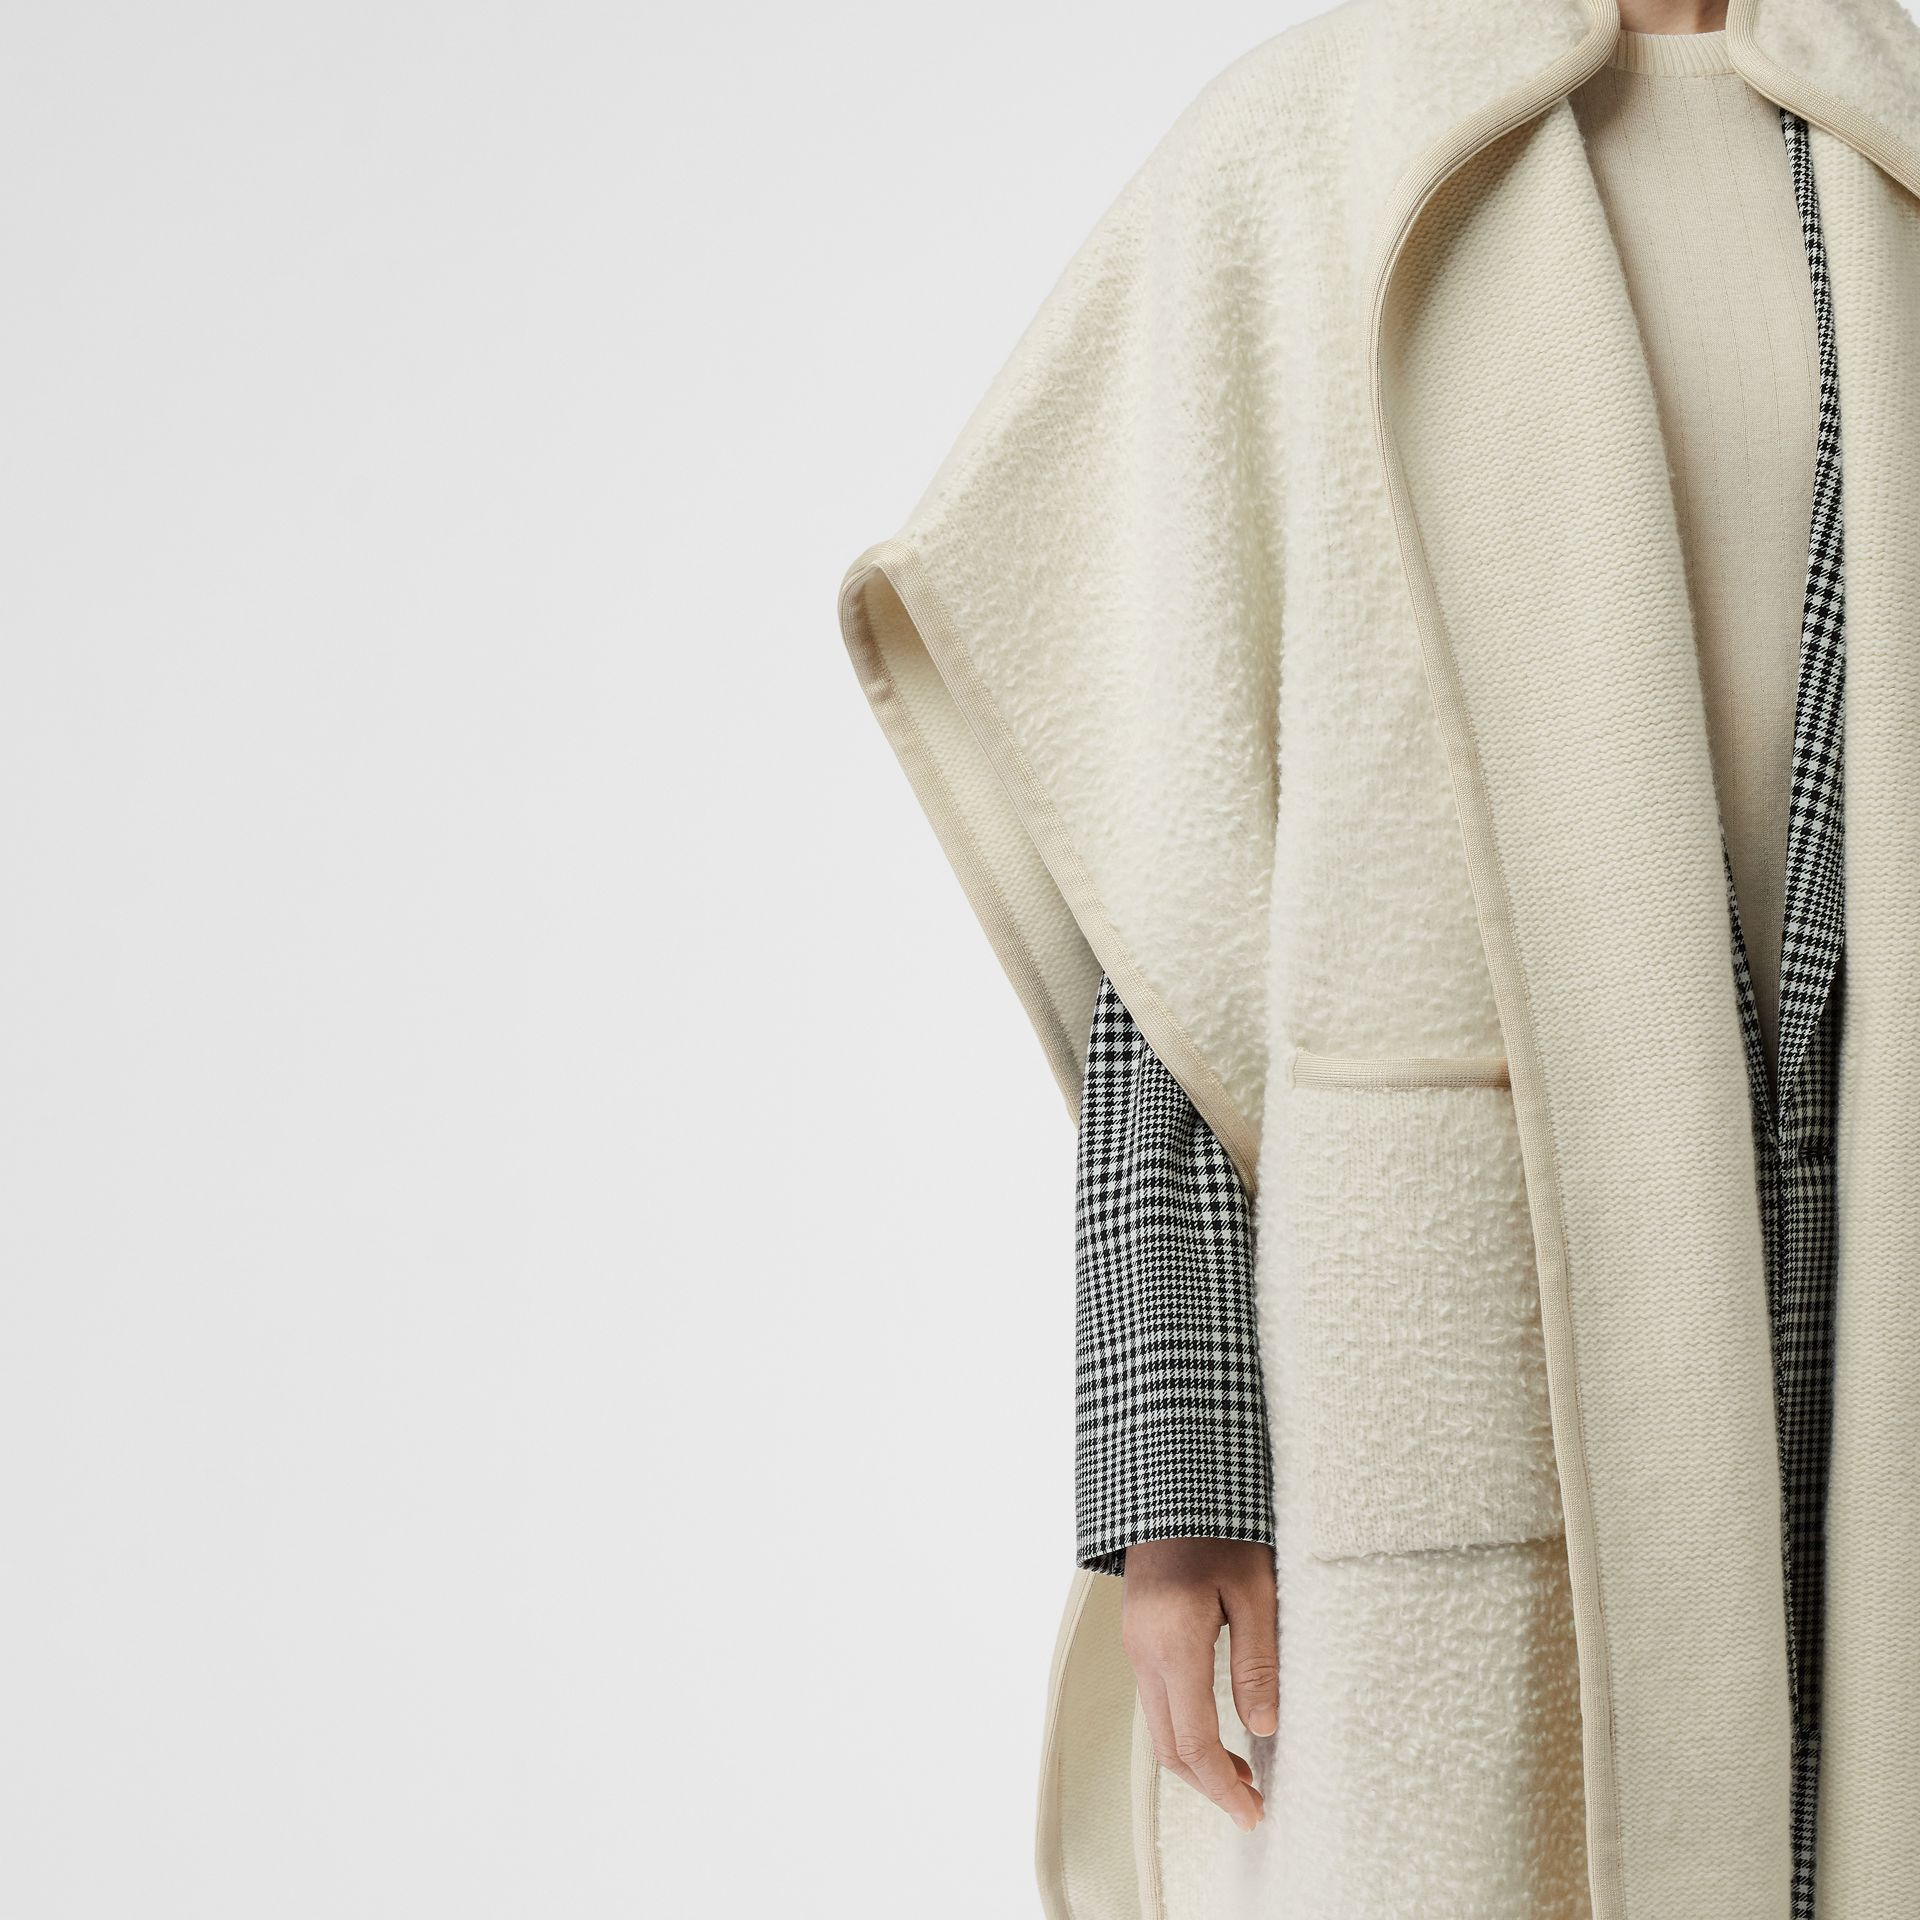 Wool Fleece Cape in Ivory - Women | Burberry Australia - gallery image 1